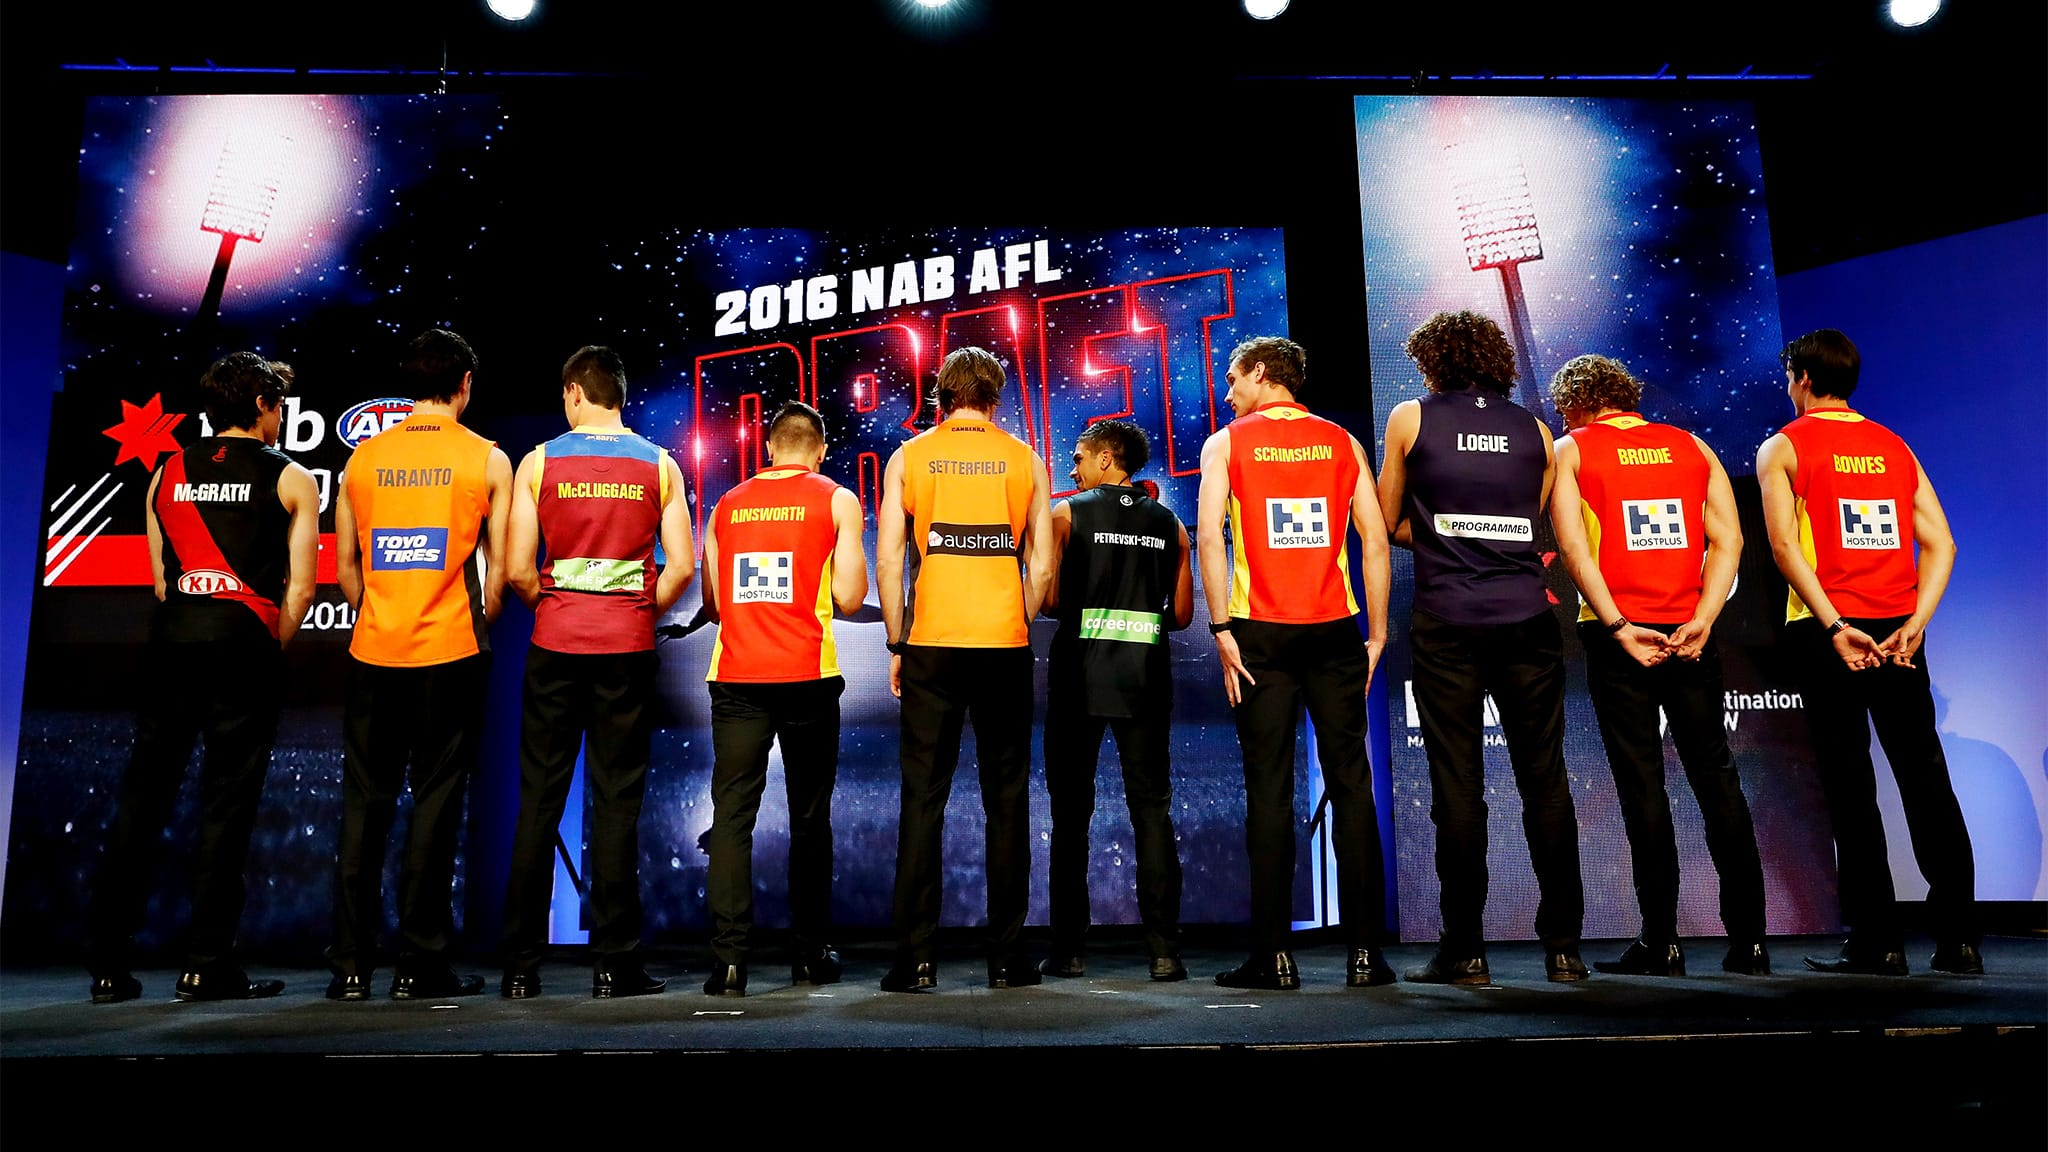 Who will you club pick up in the draft? - AFL,Draft,Adelaide Crows,Brisbane Lions,Carlton Blues,Collingwood Magpies,Essendon Bombers,Fremantle Dockers,Geelong Cats,GWS Giants,Gold Coast Suns,Hawthorn Hawks,North Melbourne Kangaroos,Melbourne Demons,Richmond Tigers,Port Adelaide Magpies,Sydney Swans,West Coast Eagles,Western Bulldogs,St Kilda Saints